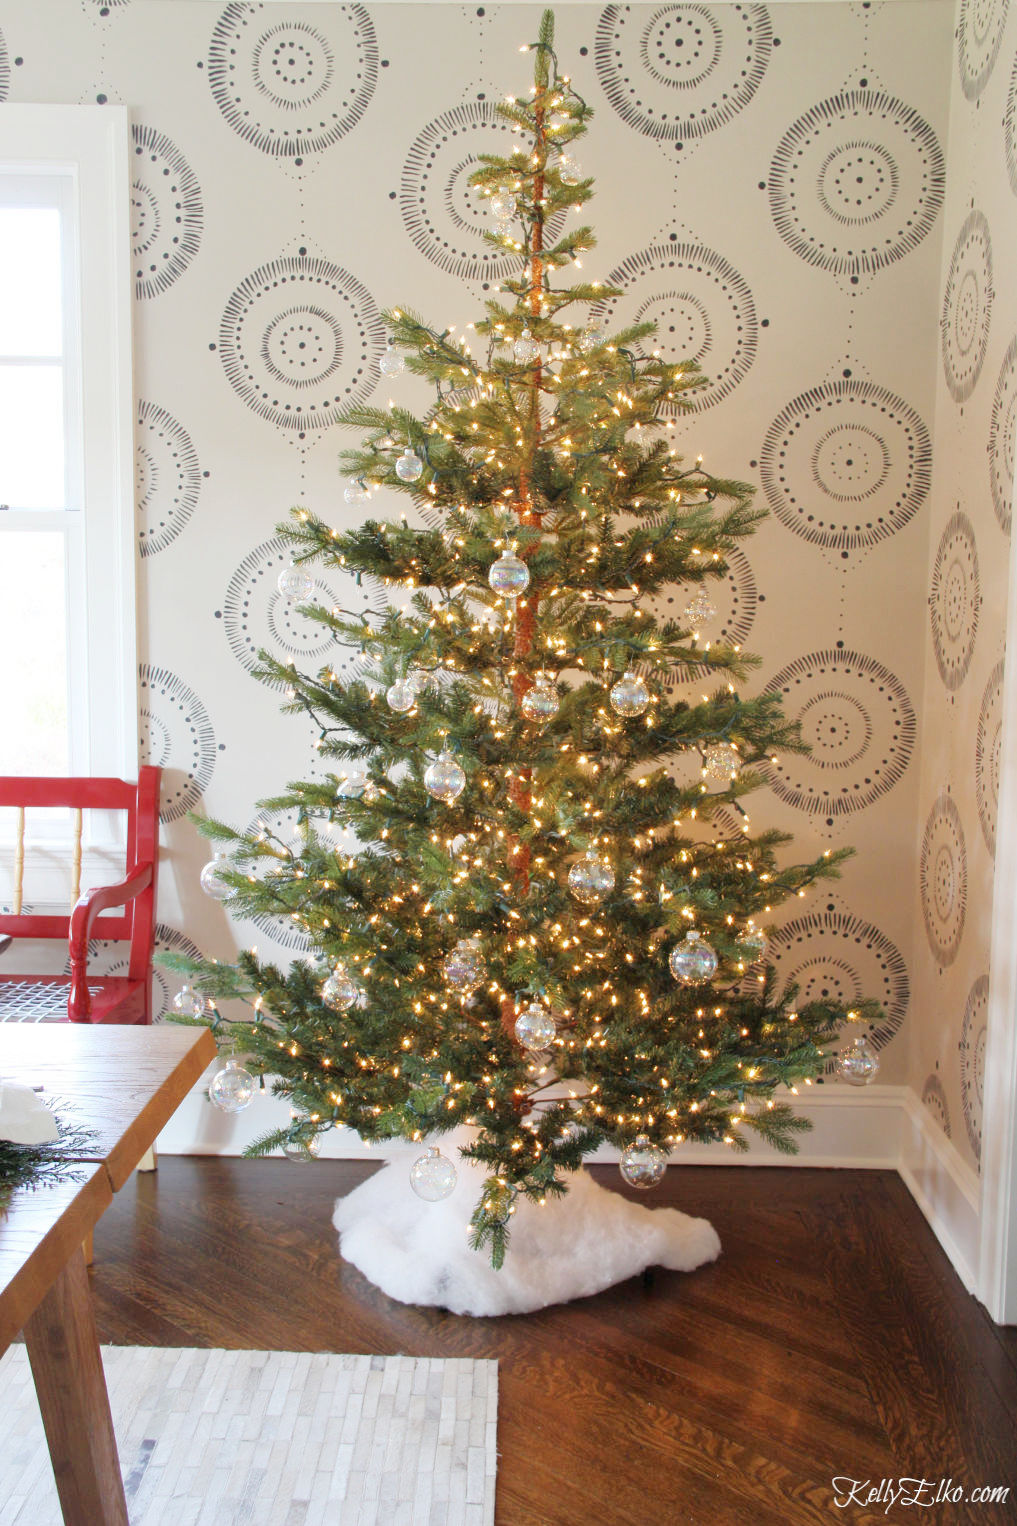 This Christmas Home Tour has the most beautiful trees covered in tons of lights and clear ornaments kellyelko.com #christmas #christmasdecor #christmasdecorating #christmashome #christmastour #diychristmas #christmasideas #christmasmantel #christmastree #christmasornaments #vintagechristmas #farmhousechristmas #colorfulchristmas #creativechristmas #kellyelko #glassornaments #diychristmas #christmastreeskirt